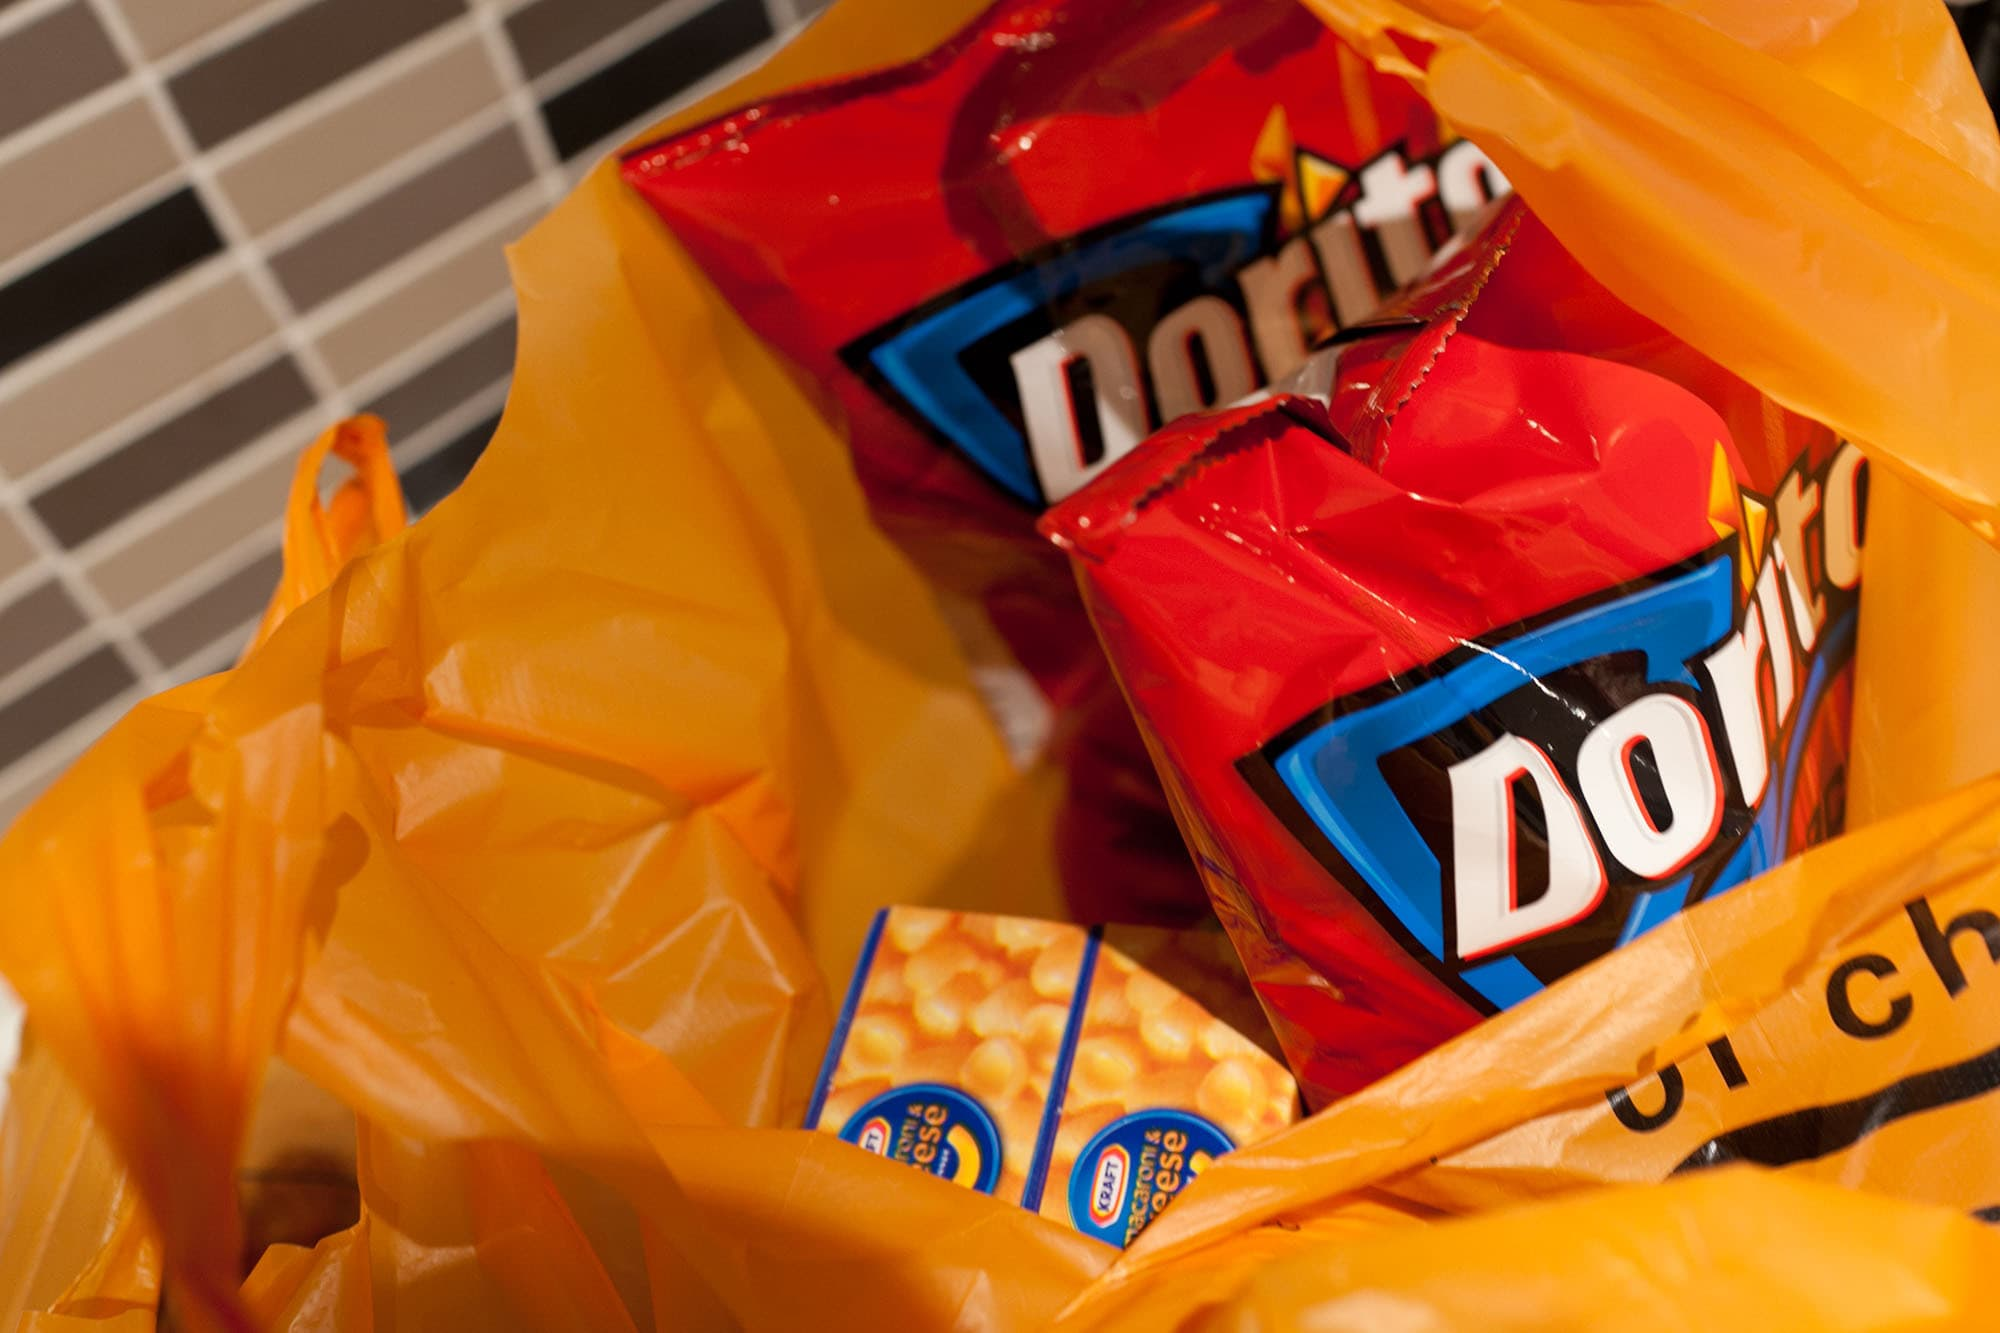 Doritos at a sleepover party in Chiang Mai, Thailand.